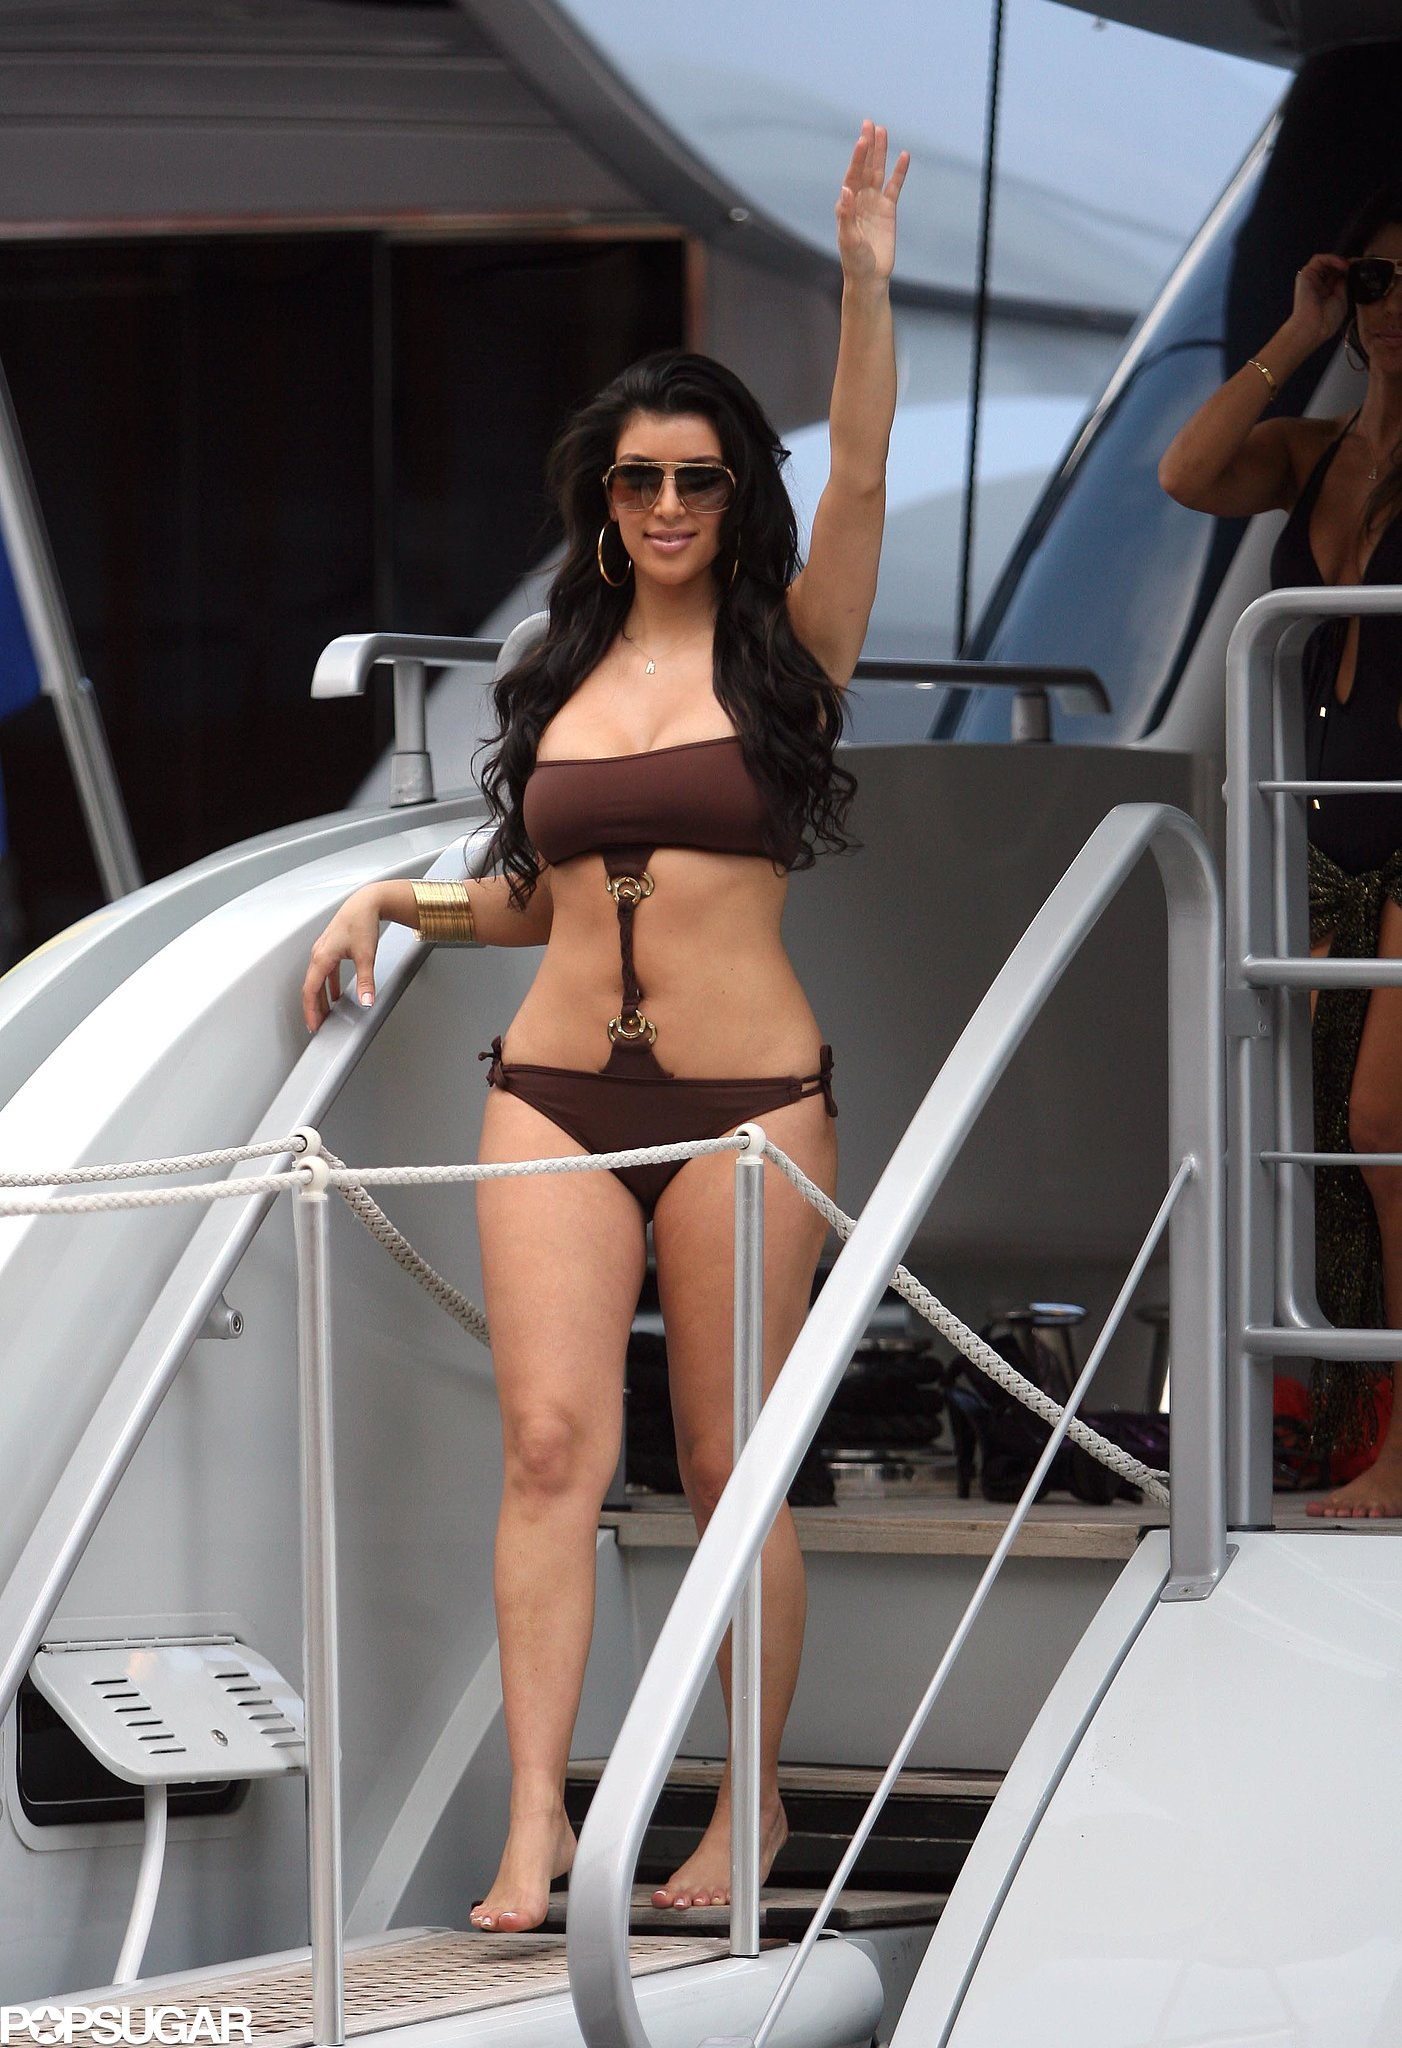 Kim Kardashian waved to the camera while vacationing in Monte Carlo in June 2008.